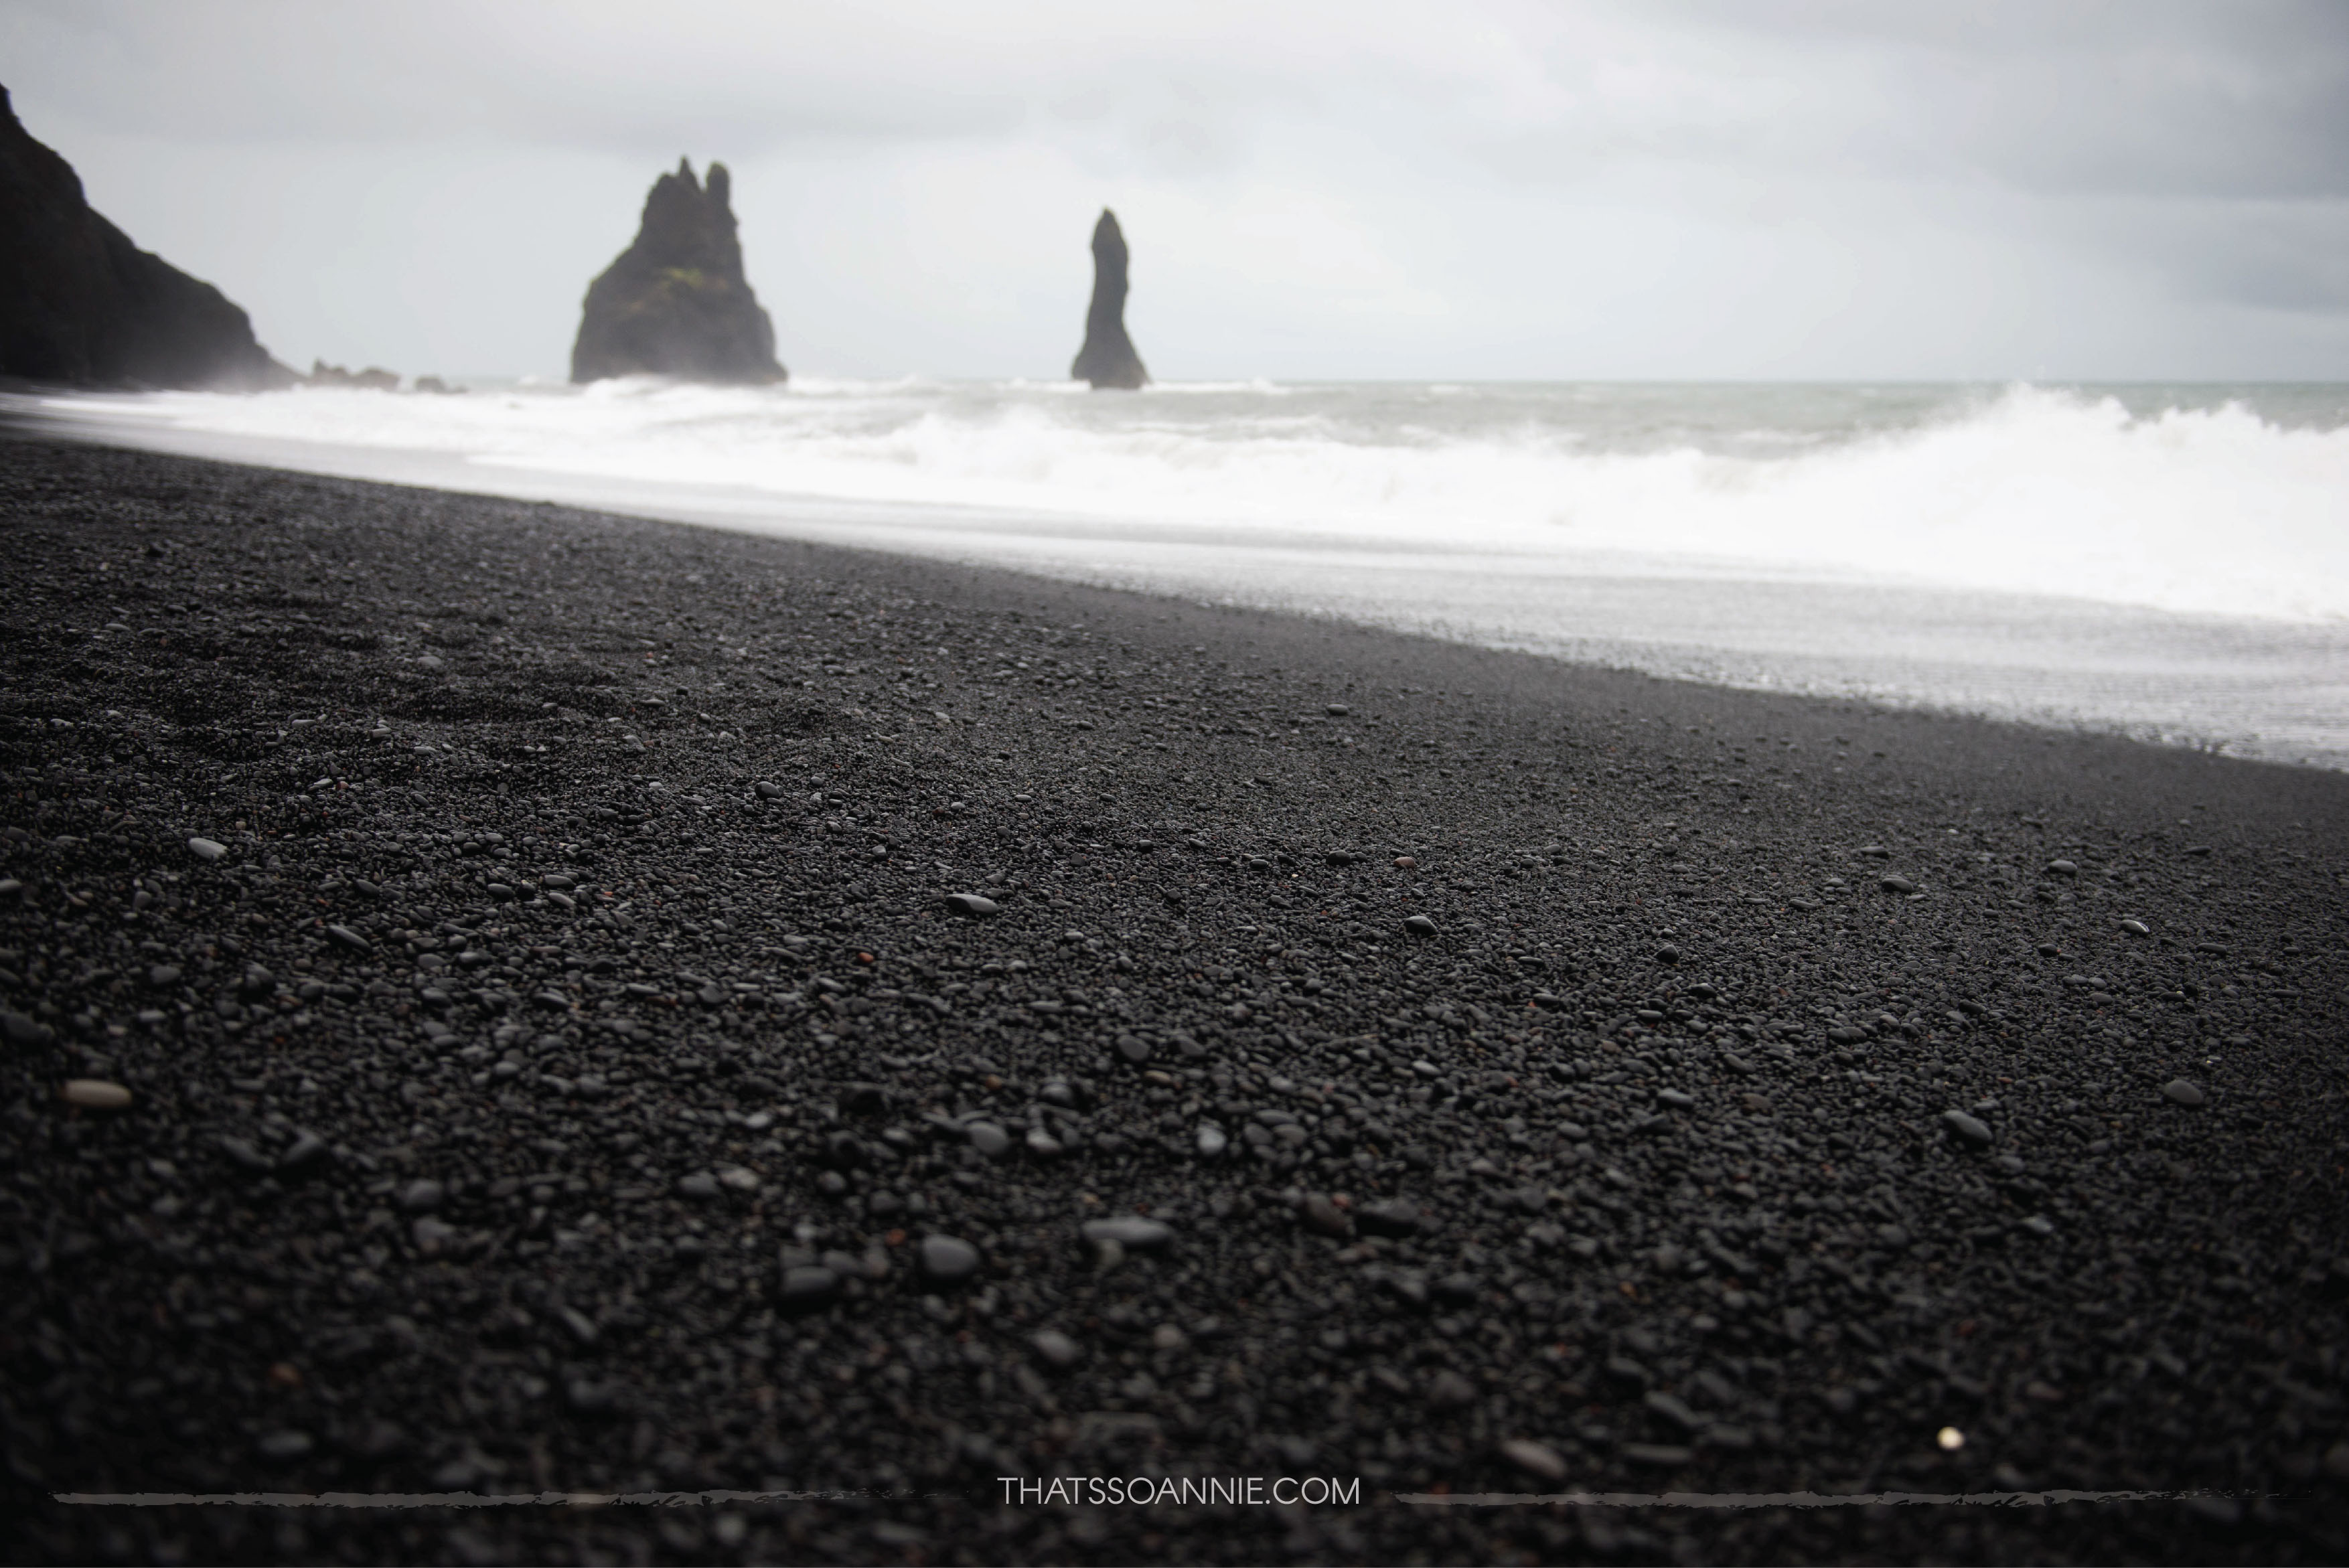 The basalt stacks of Reynisdrangar against the black pebbles of the Reynisfjara beach